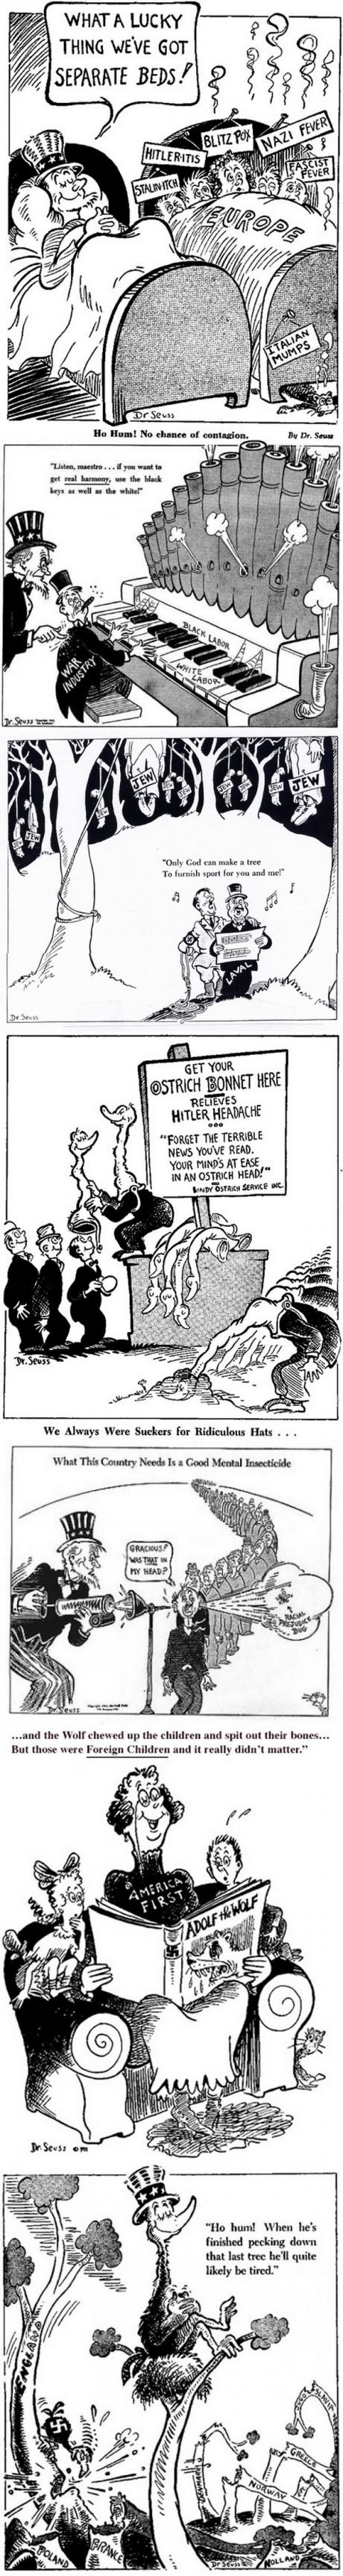 Dr. Suess used to draw political cartoons as well